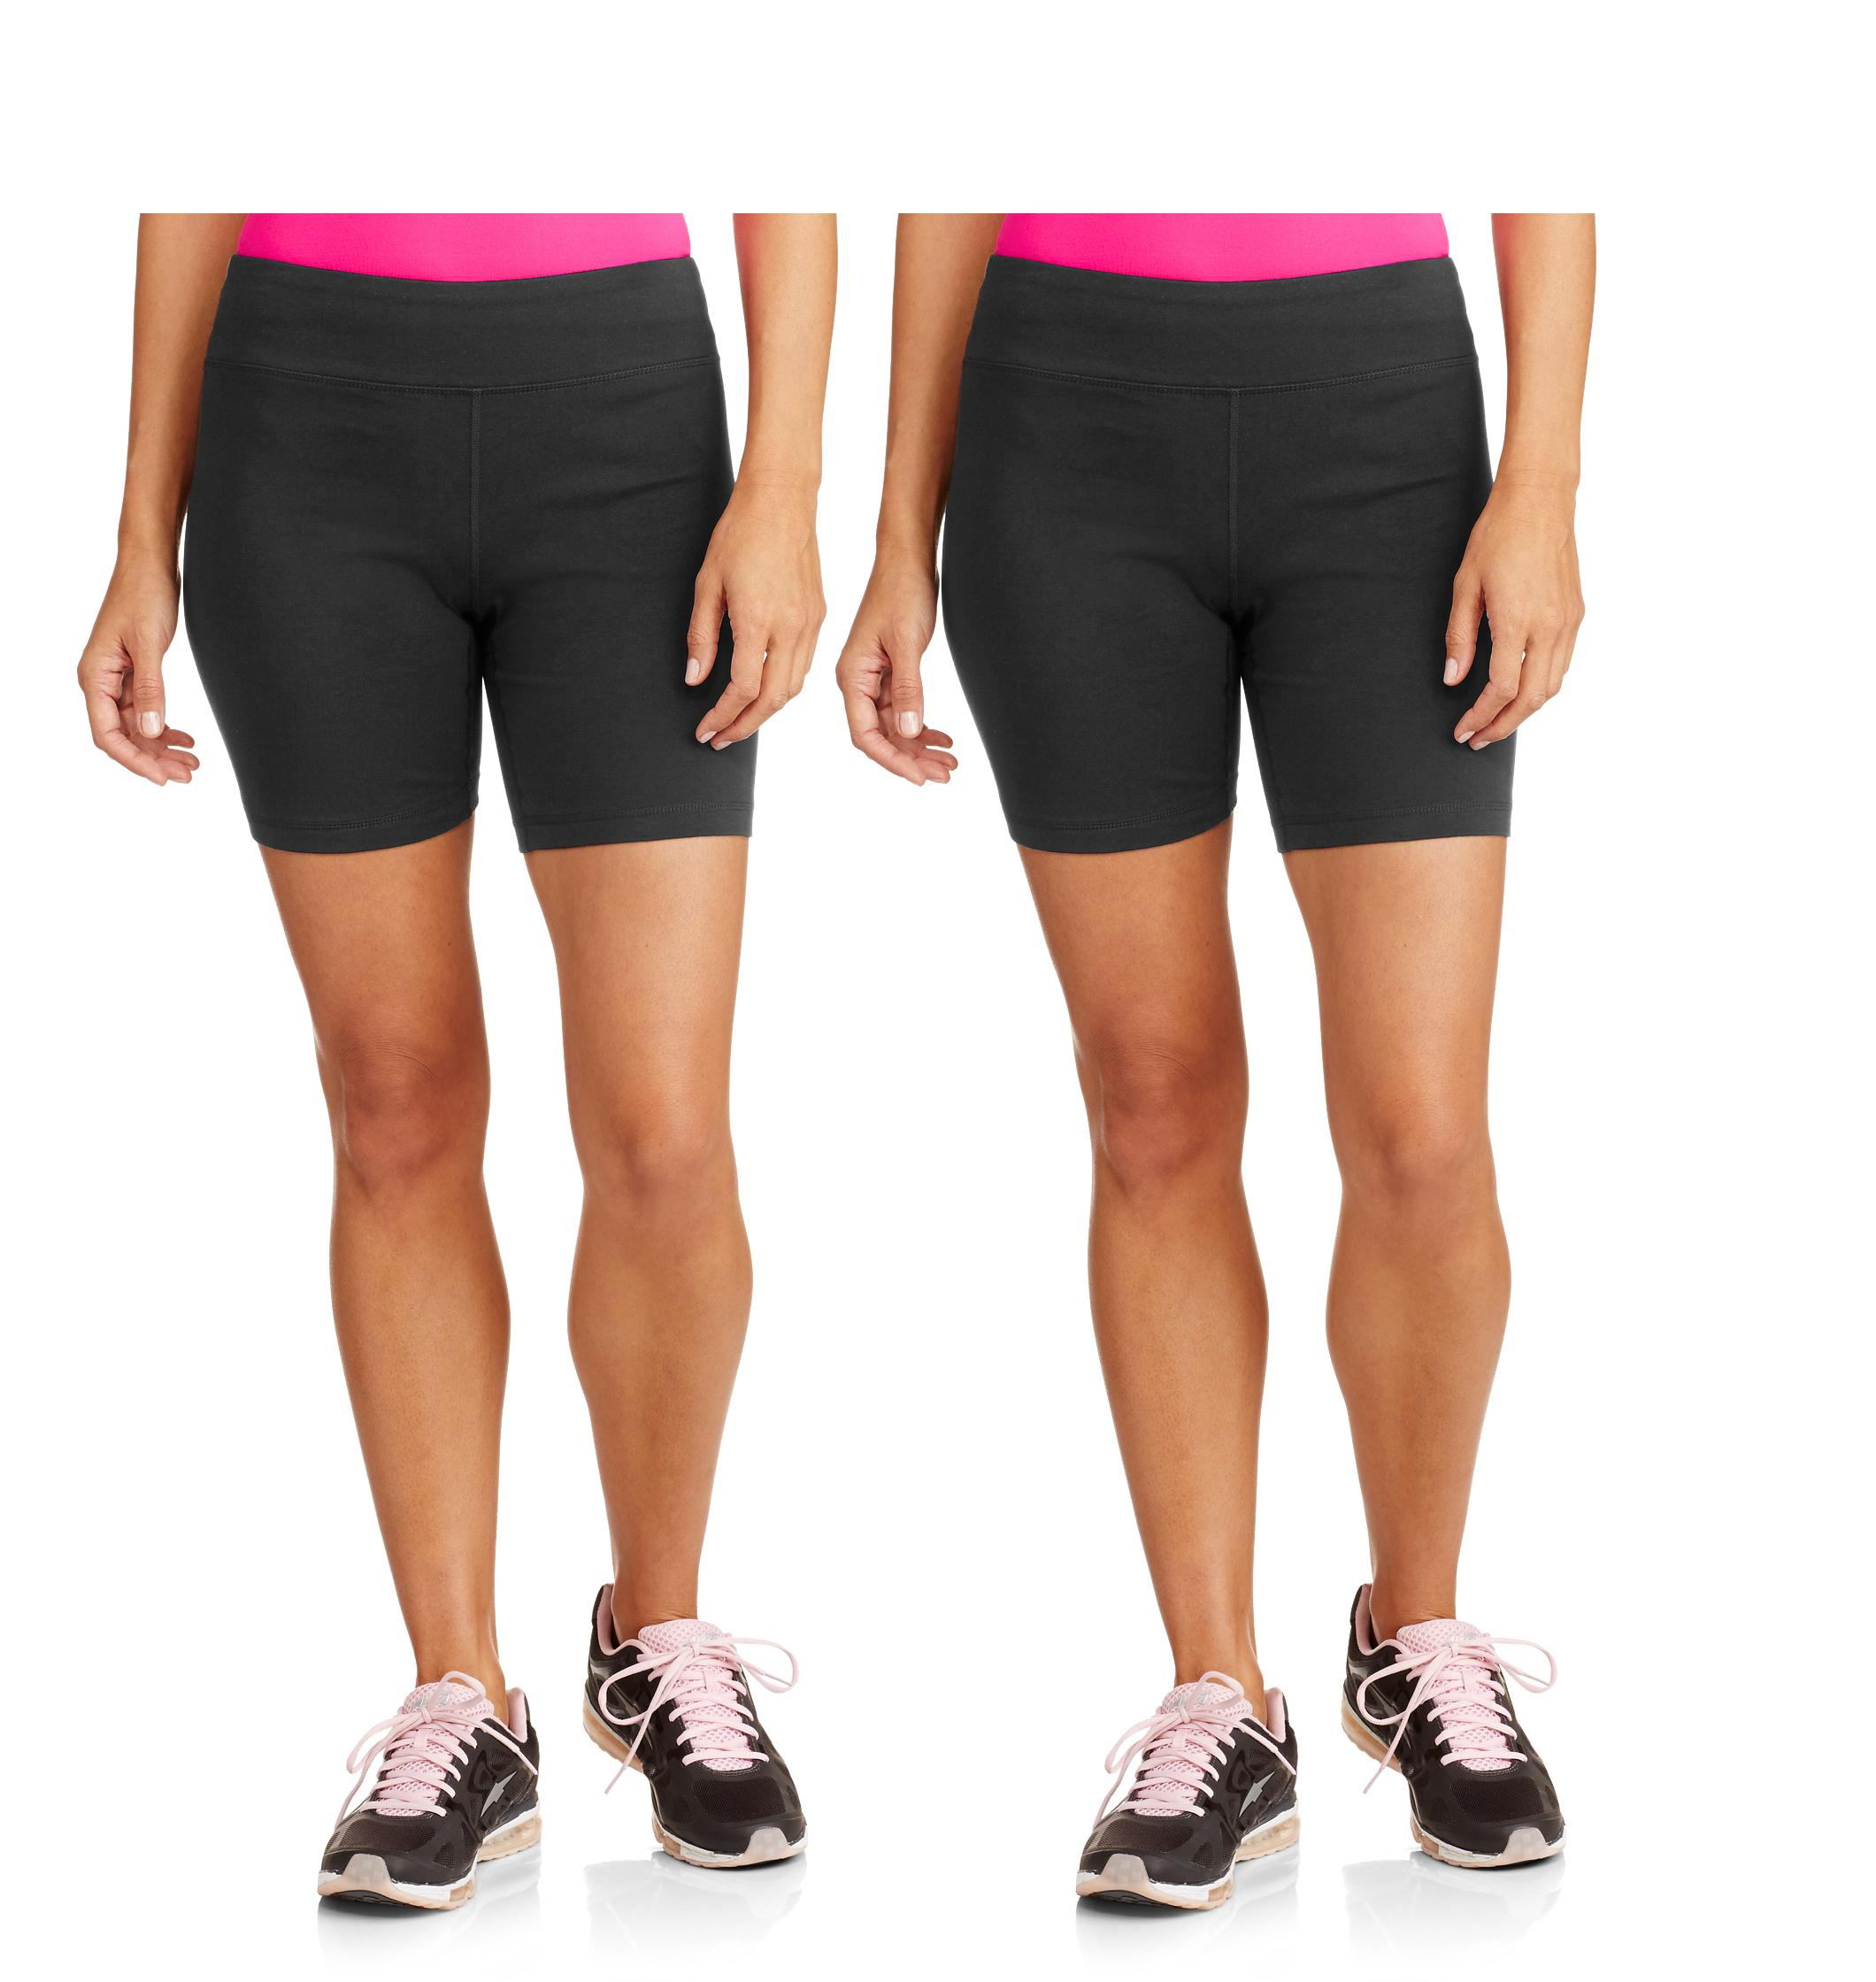 Danskin Now Women's Dri-More Core Bike Shorts, 2-Pack